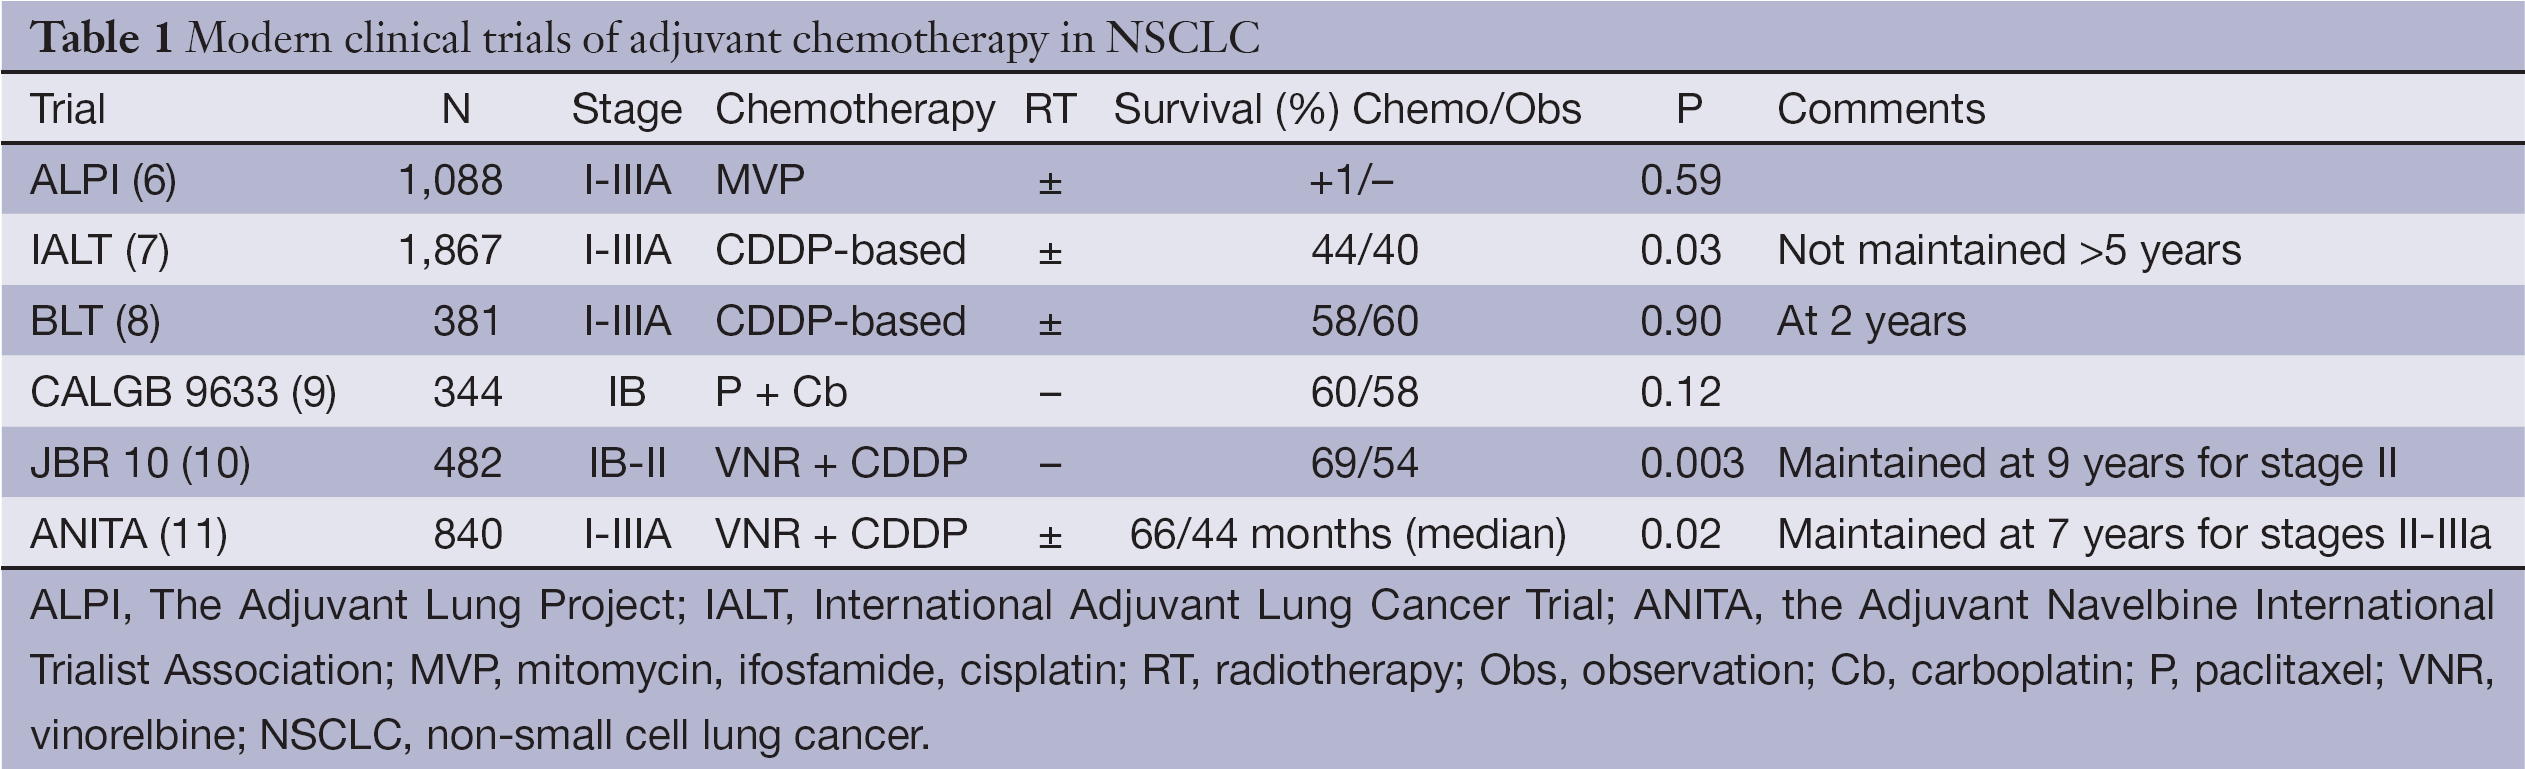 Adjuvant chemotherapy in non-small cell lung cancer: state